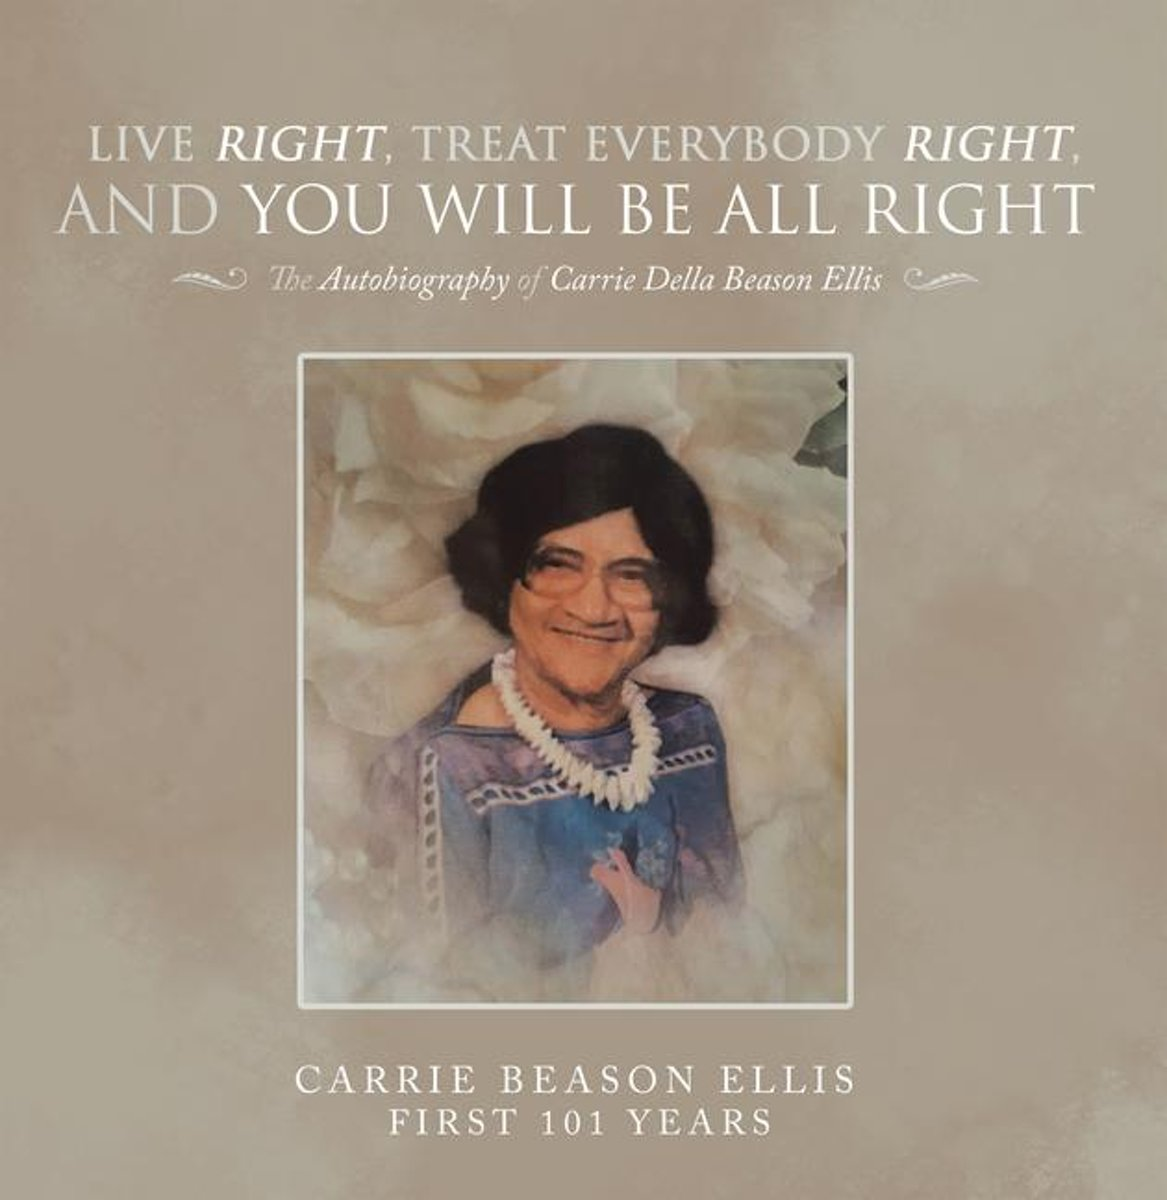 Live Right, Treat Everybody Right, and You Will Be All Right